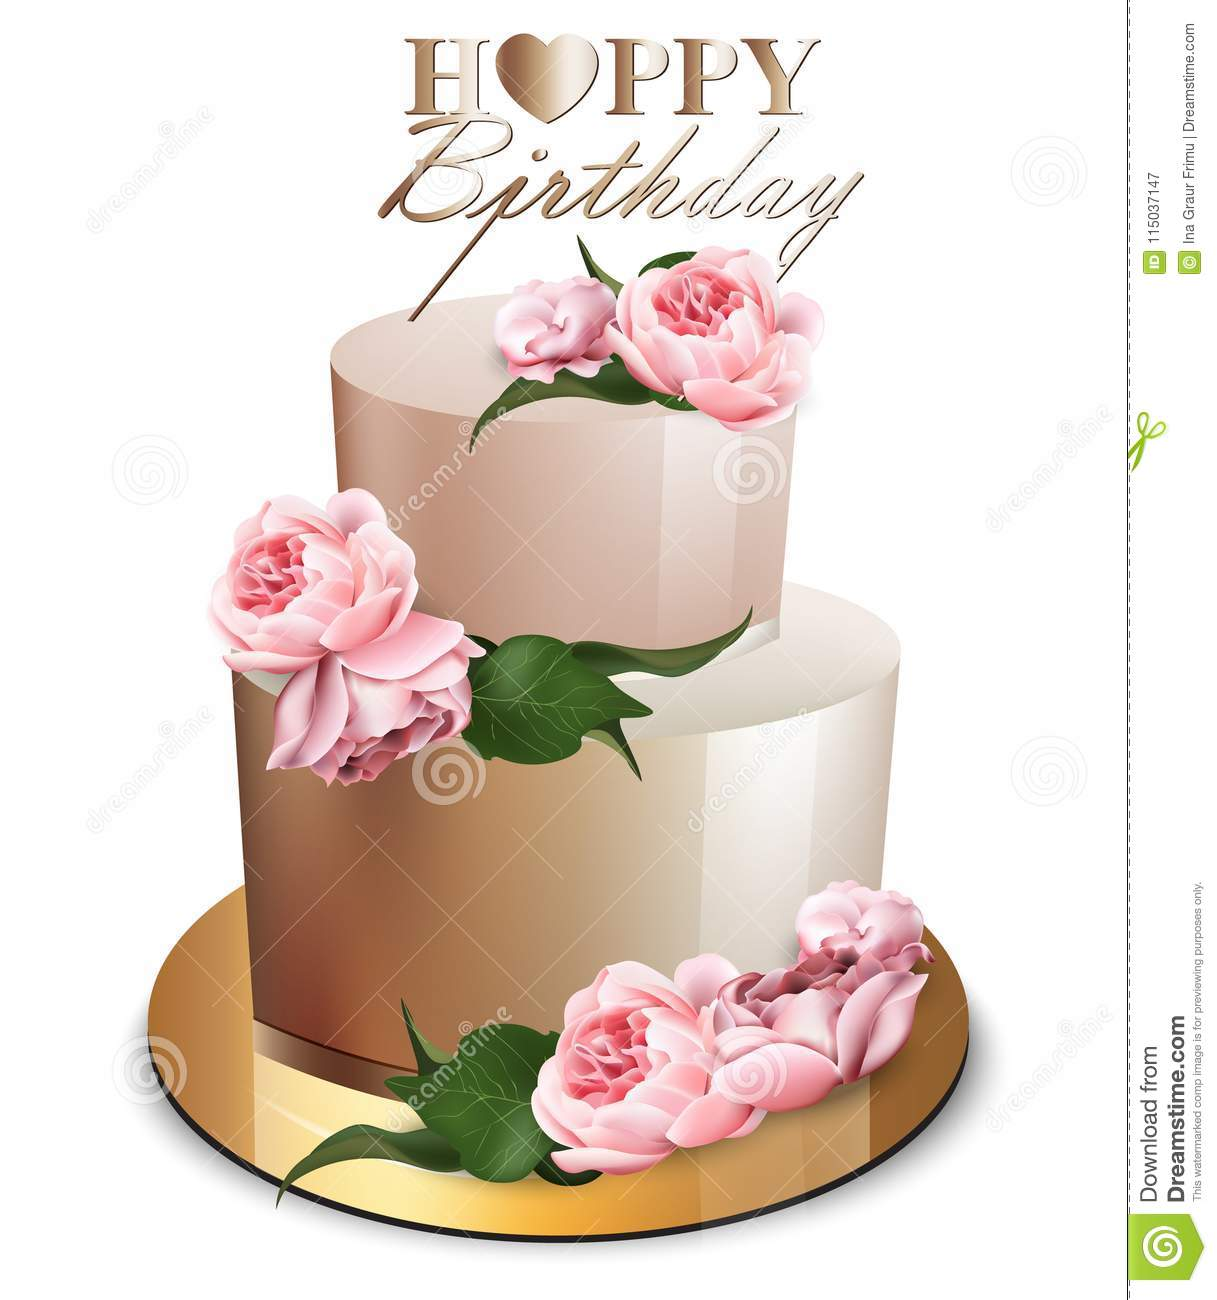 Happy Birthday Cake Vector Realistic Anniversary Wedding Ceremony Modern Desserts Golden With Peony Flowers Bouquet